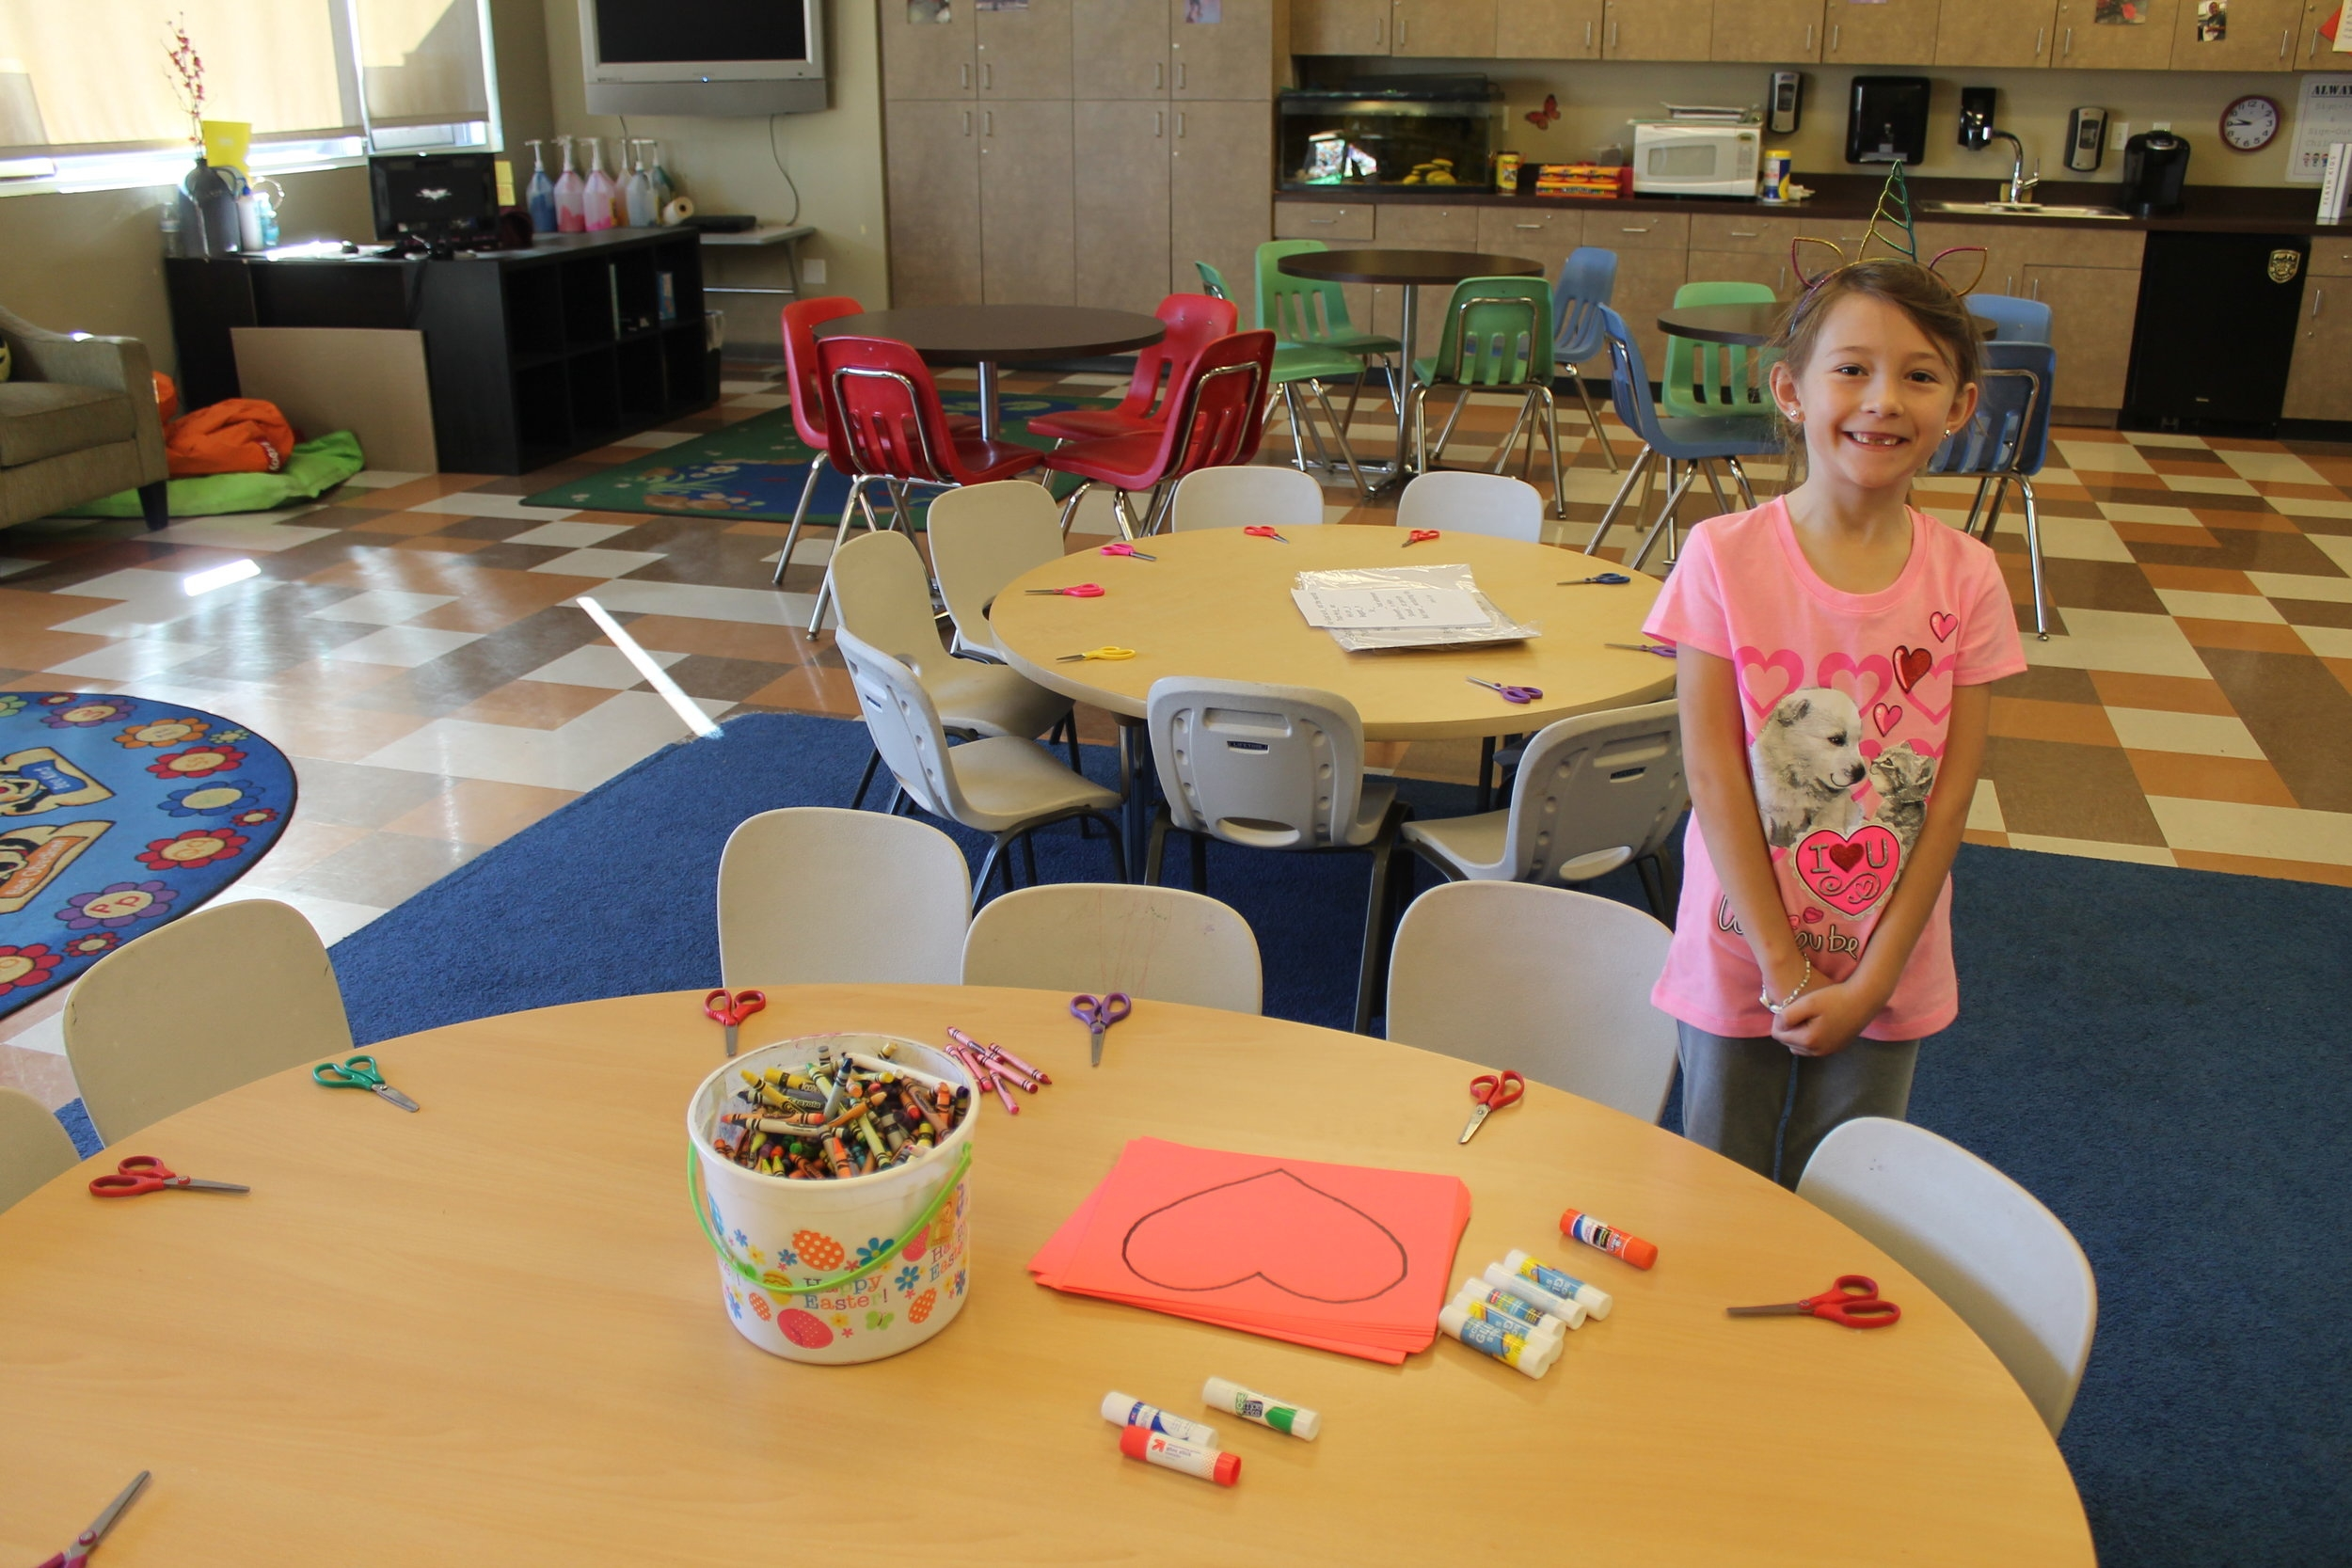 Abigail Allen, 7 year old volunteer, helped with the Valentine craft as she handed out the scissors, crayons, paste and red cut out hearts.